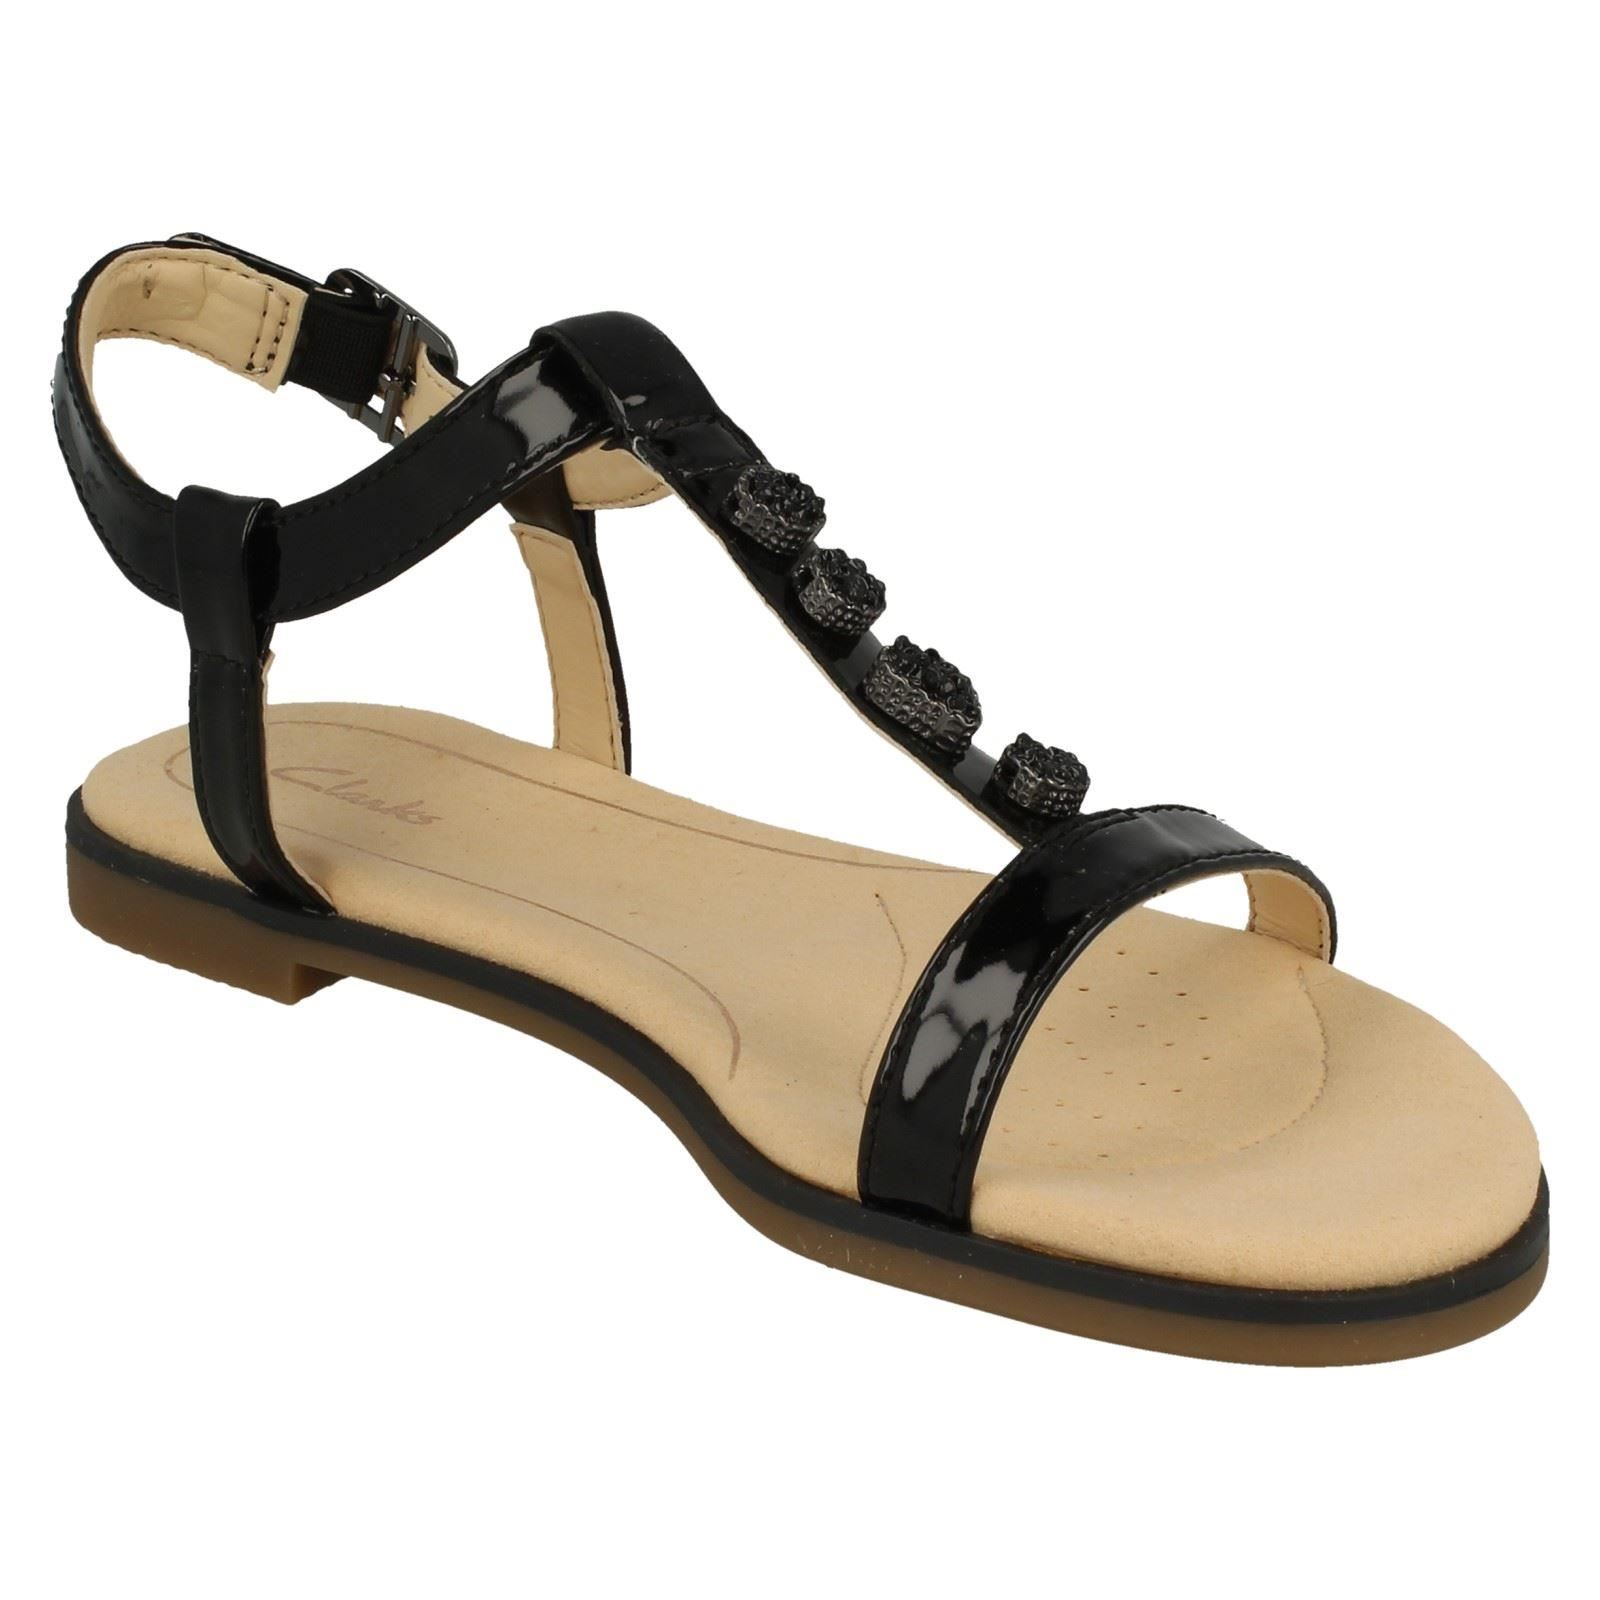 0559905edc46 Ladies-Clarks-Casual-Slingback-Sandals-039-Bay-Blossom-